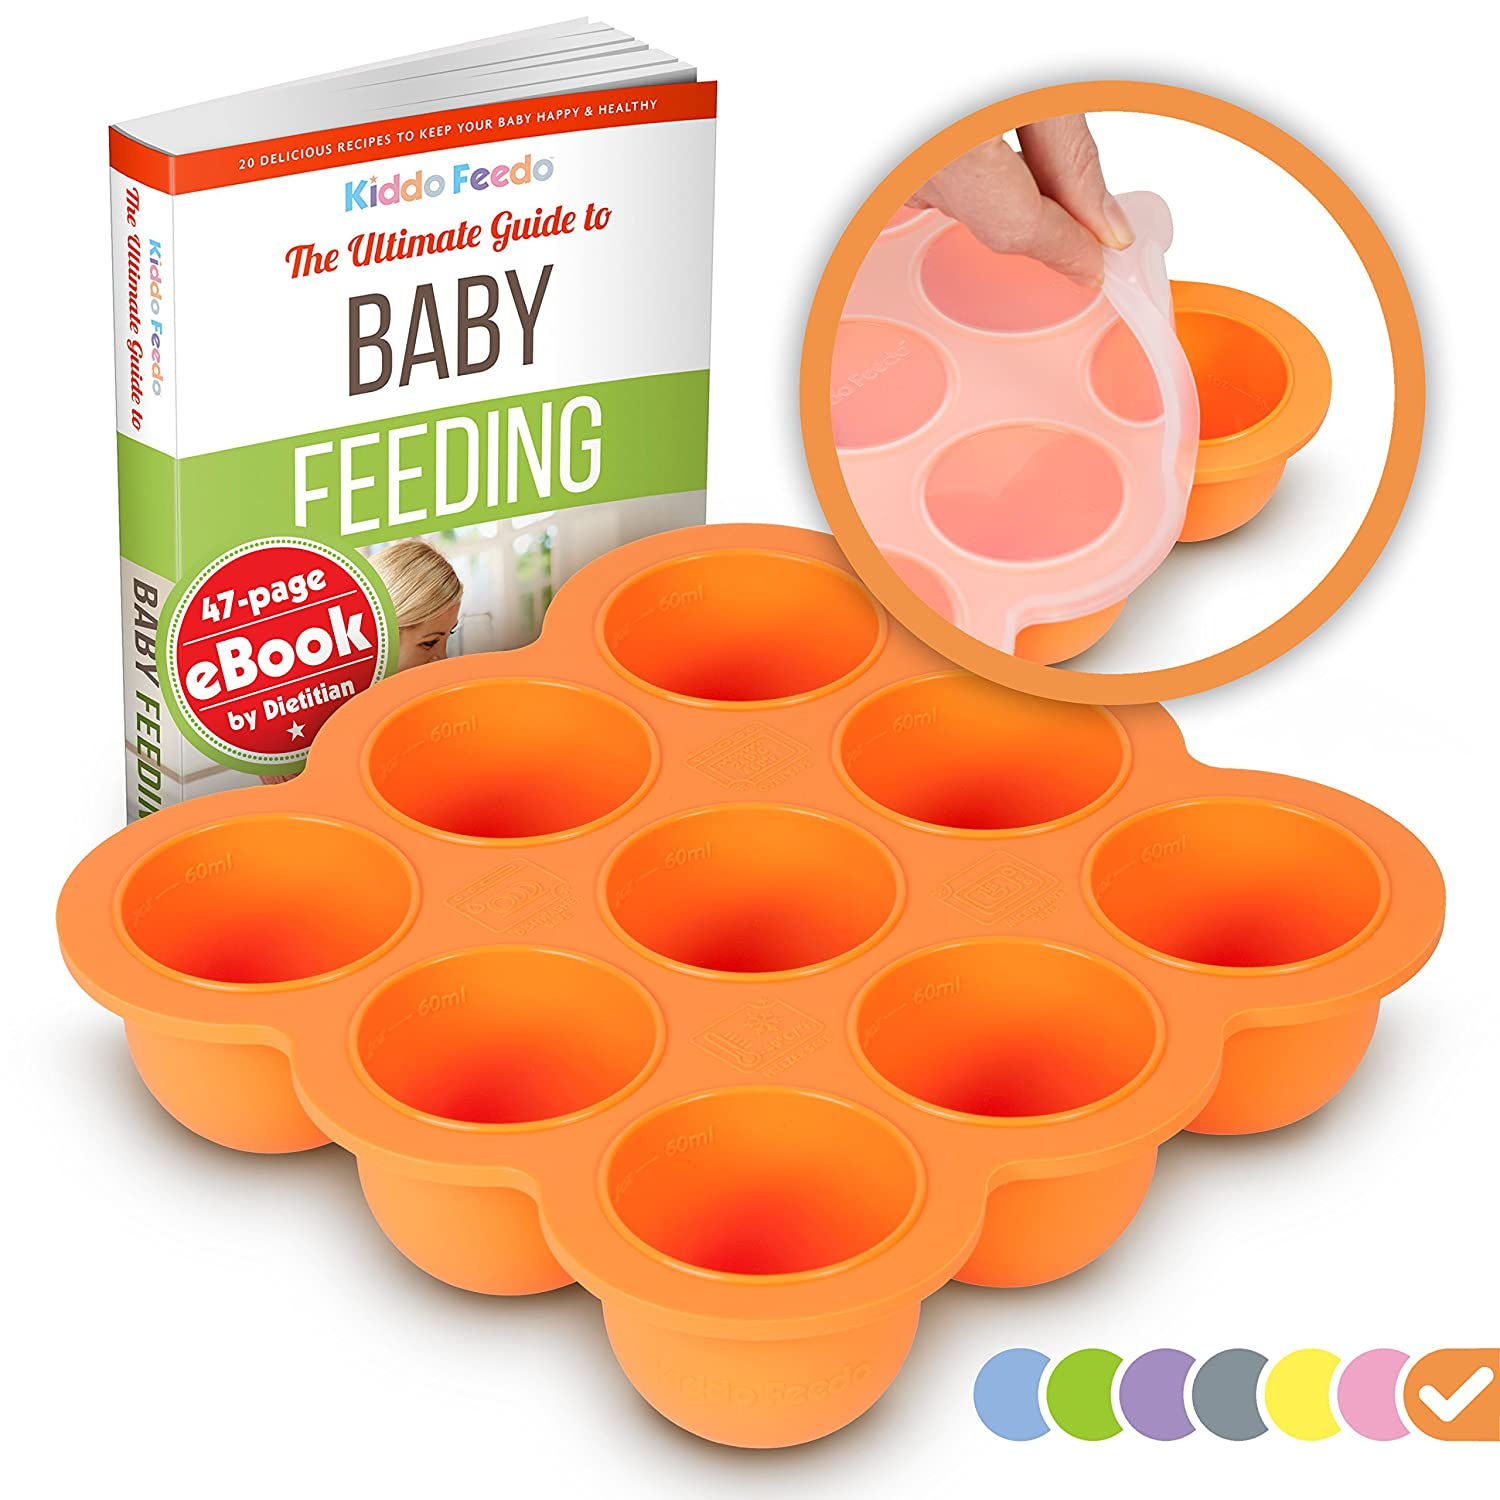 KIDDO FEEDO Baby Food Prep & Storage Container with Silicone Lid - BPA Free & FDA Approved - Multipurpose Use - FREE E-book by Author/Dietitian - Yellow